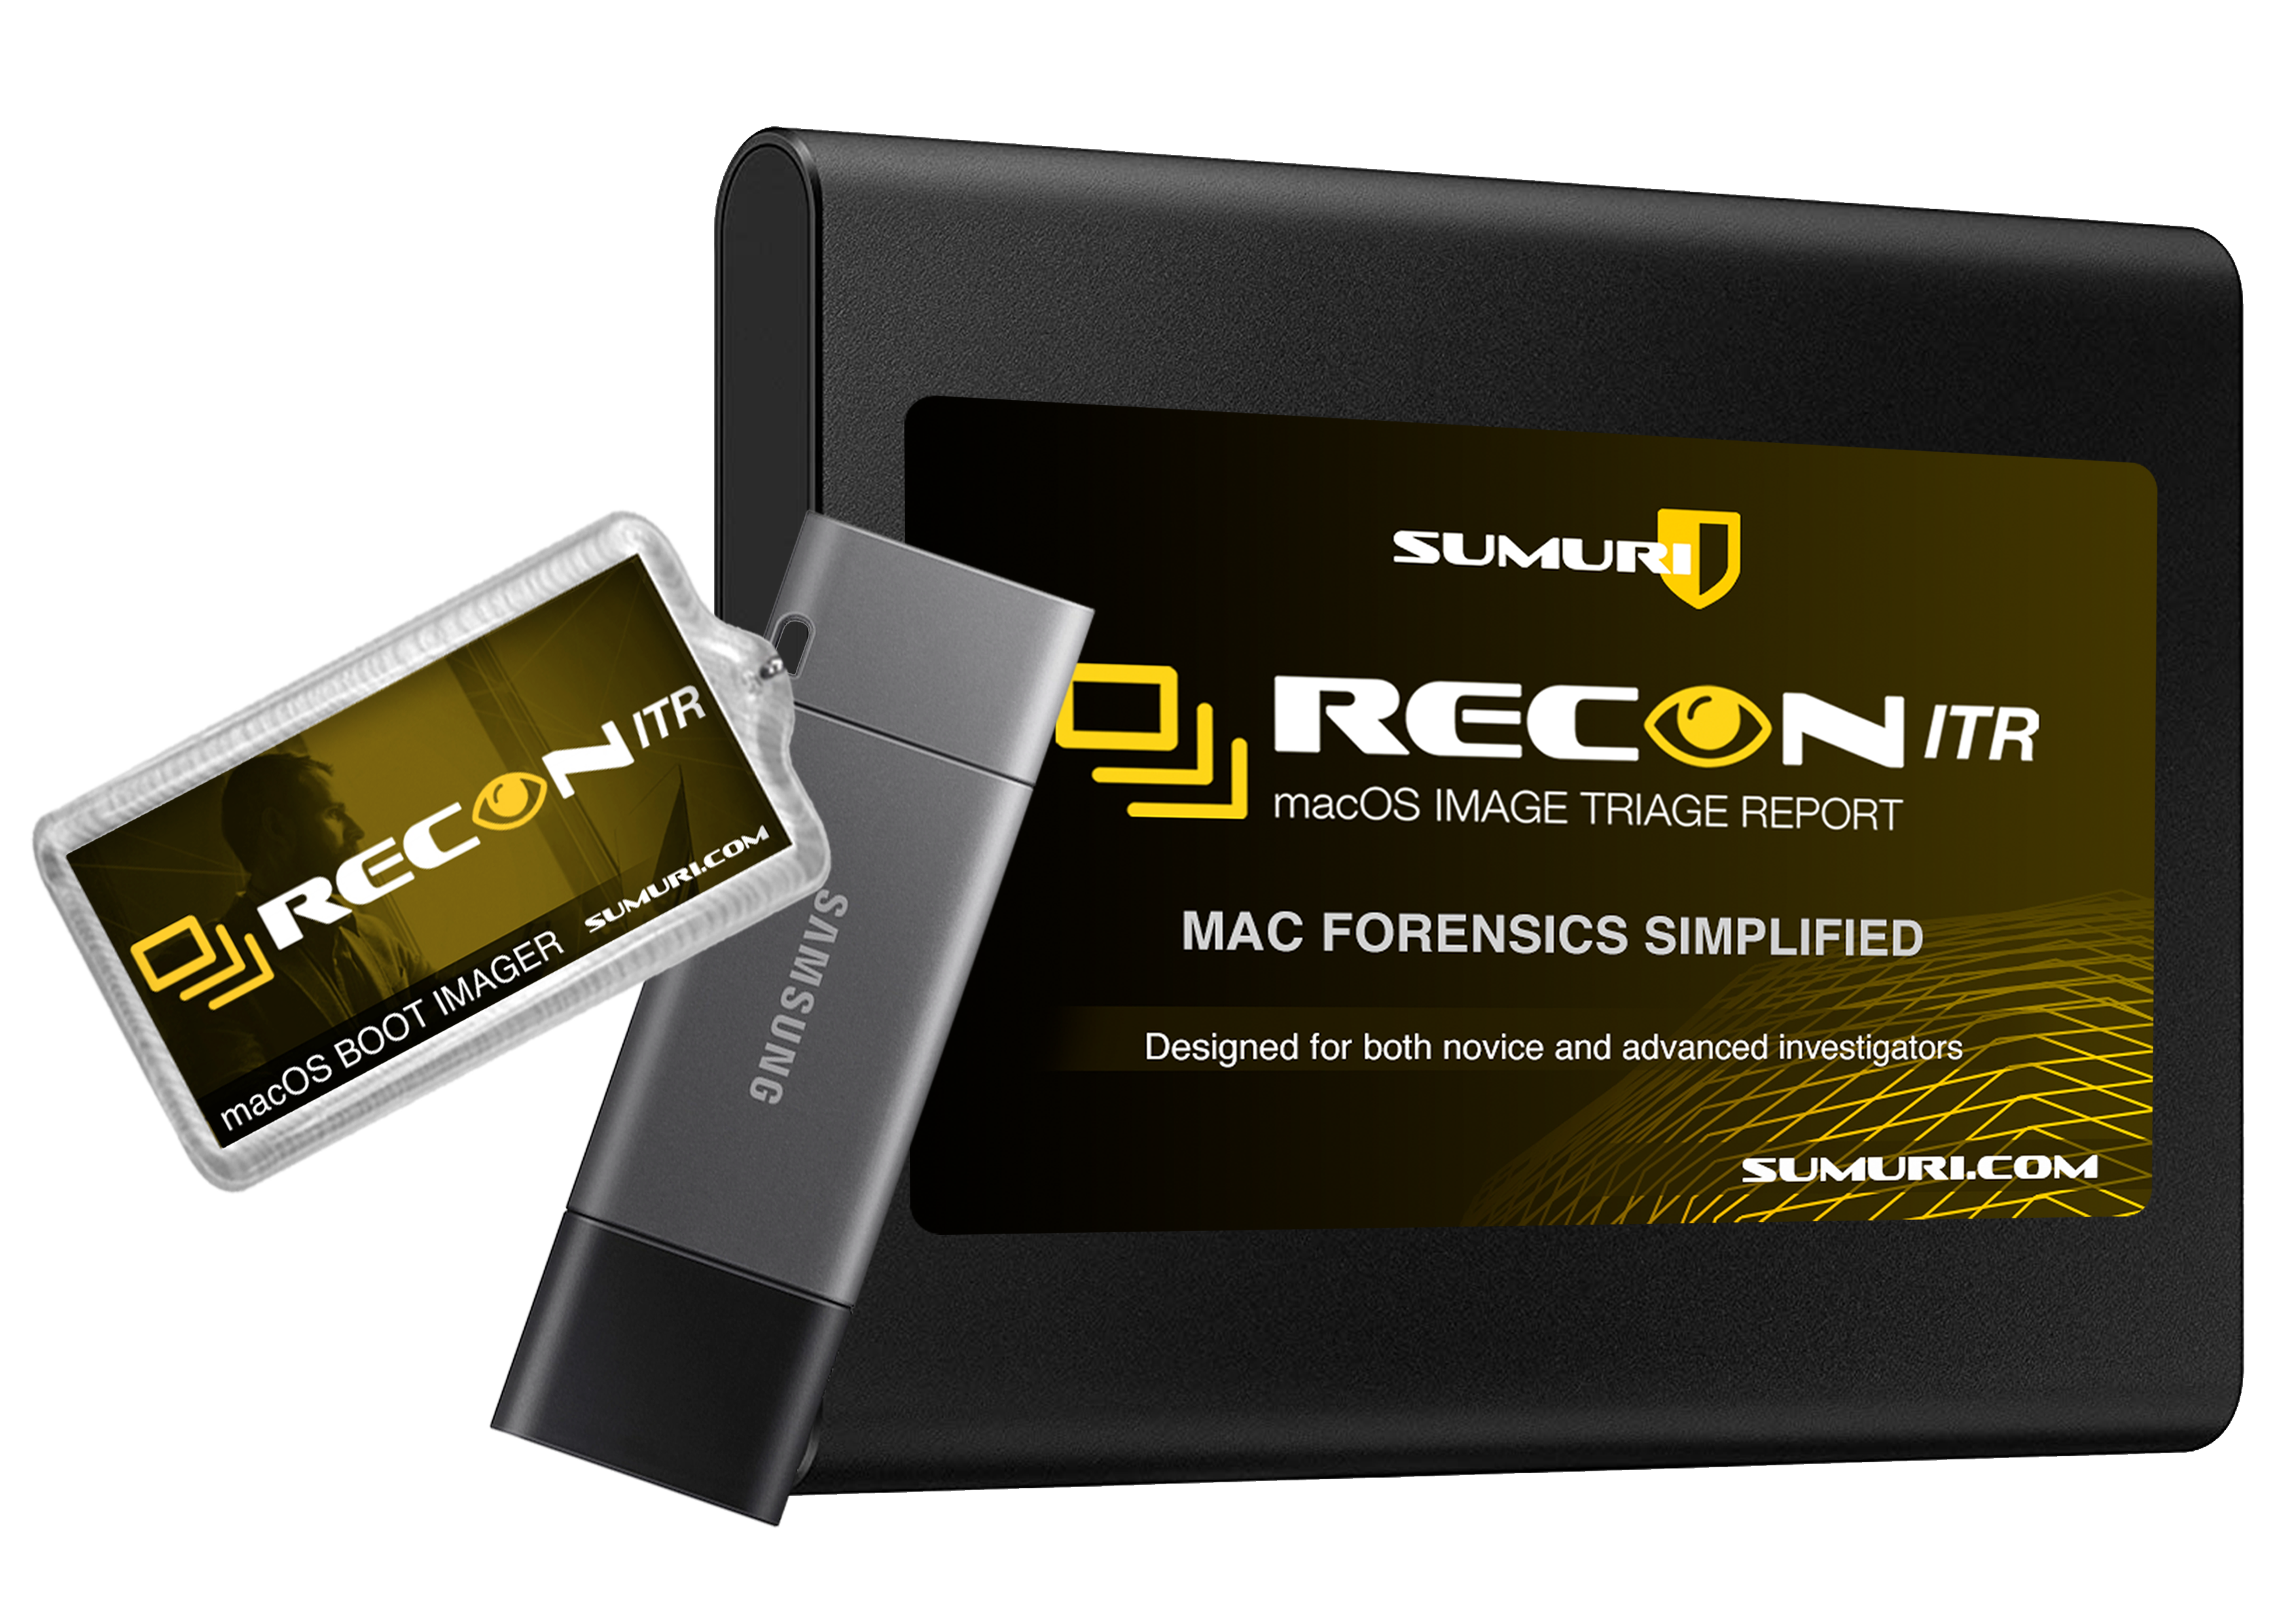 RECON ITR provides both Bootable and Live Imaging Solutions